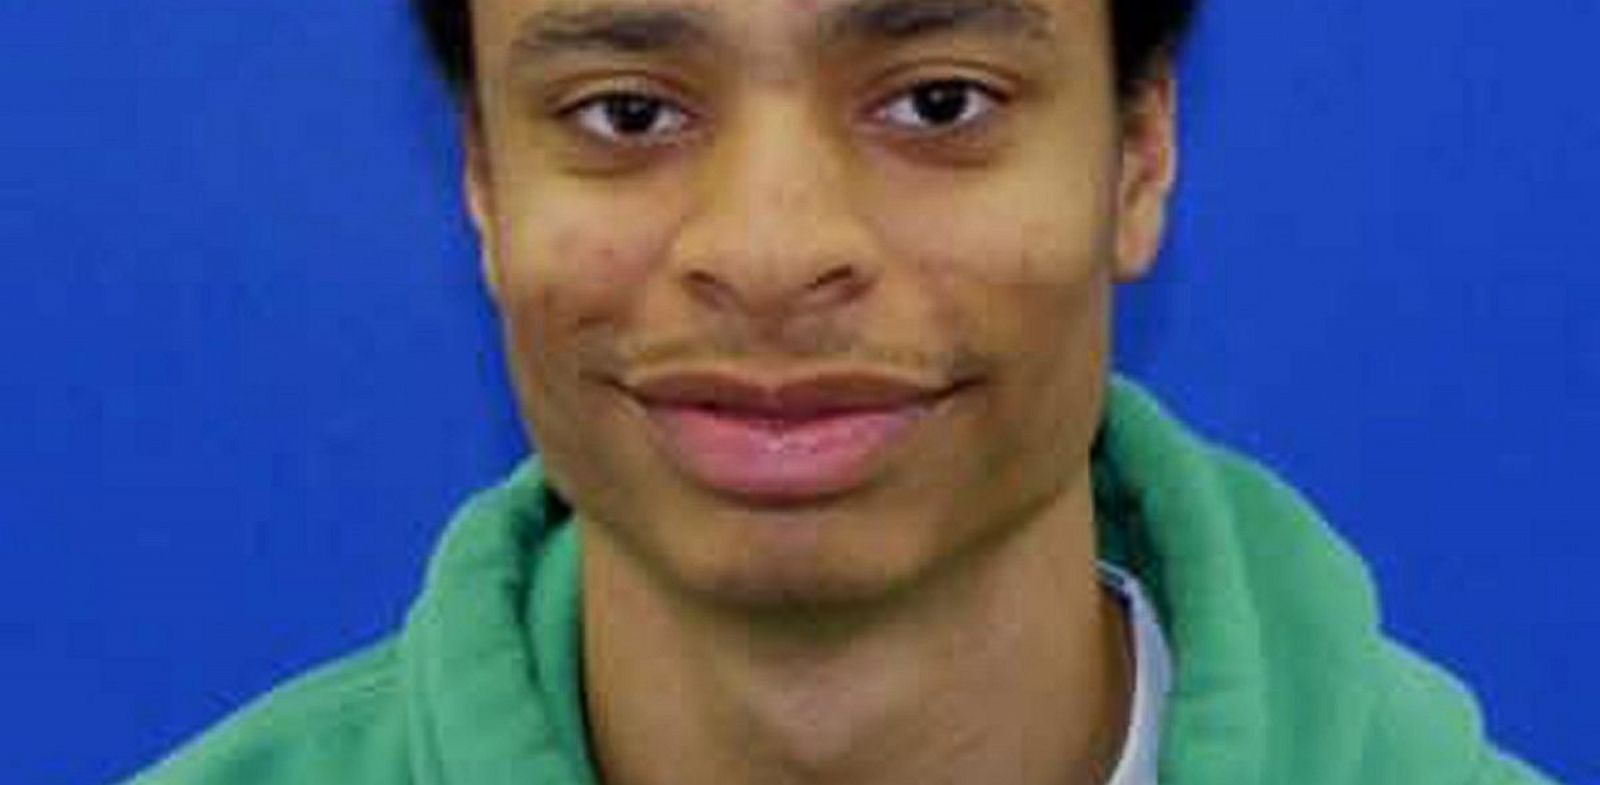 PHOTO: This photo released by the Howard County Police shows shooting suspect Darion Marcus Aguilar, 19, of College Park, MD.